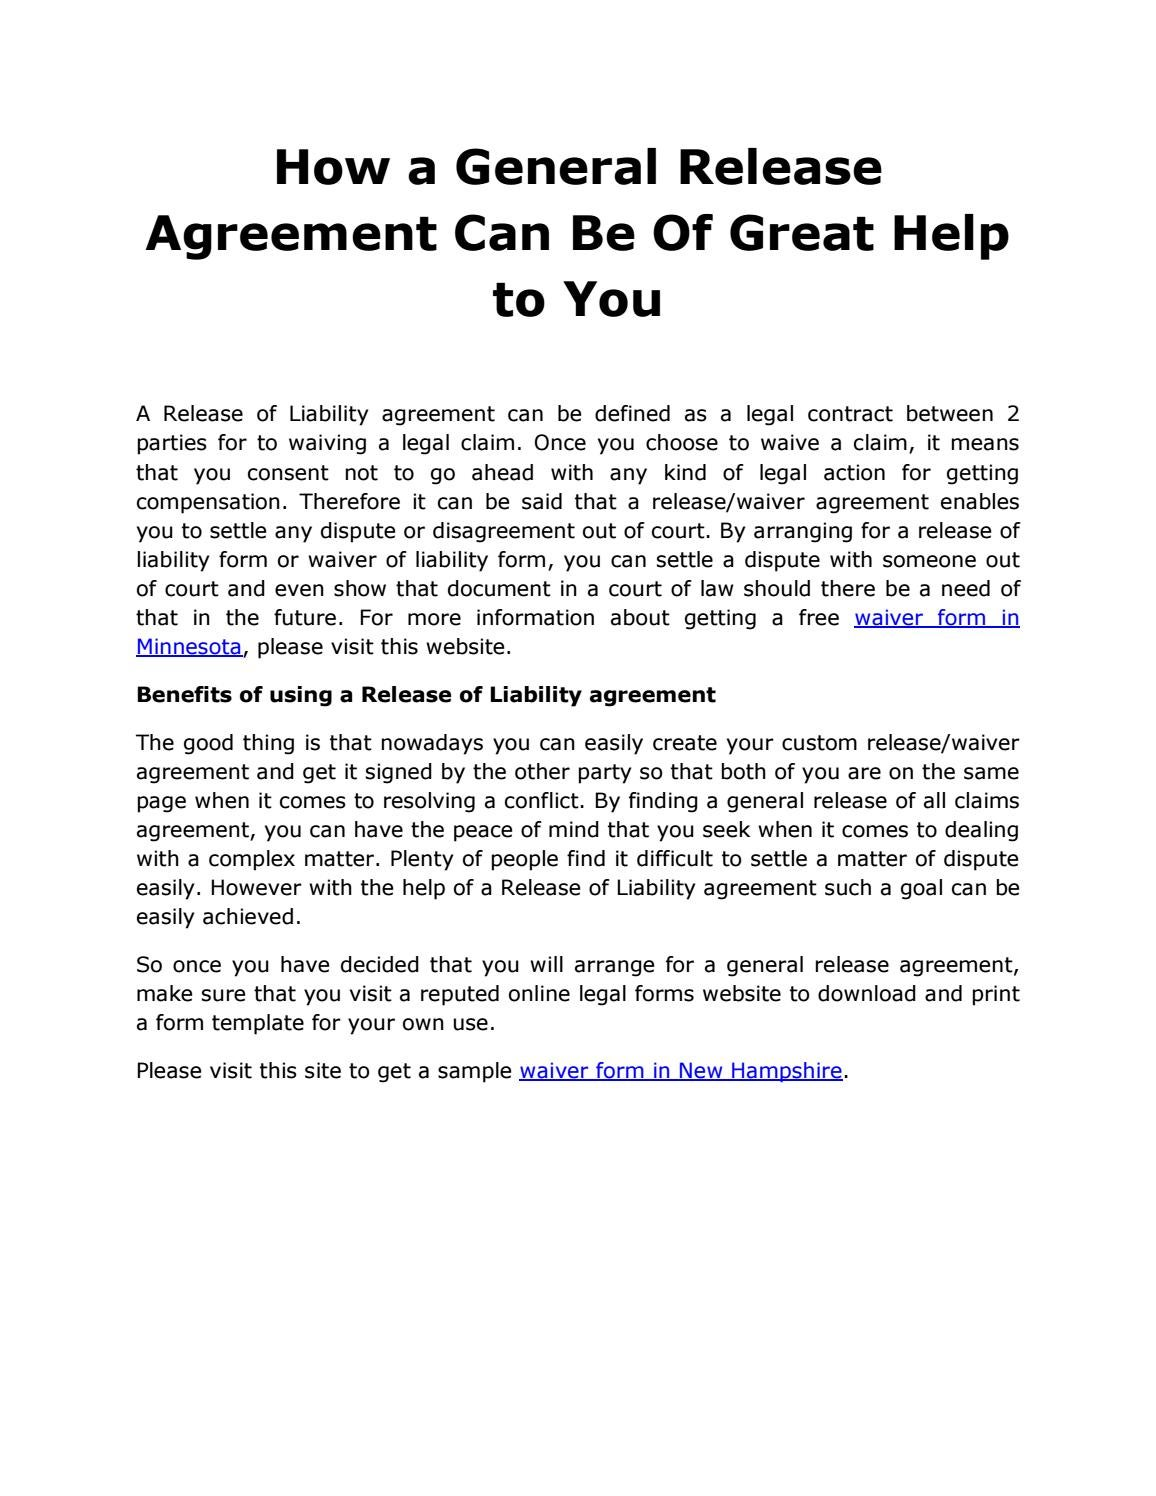 How A General Release Agreement Can Be Great Help To You